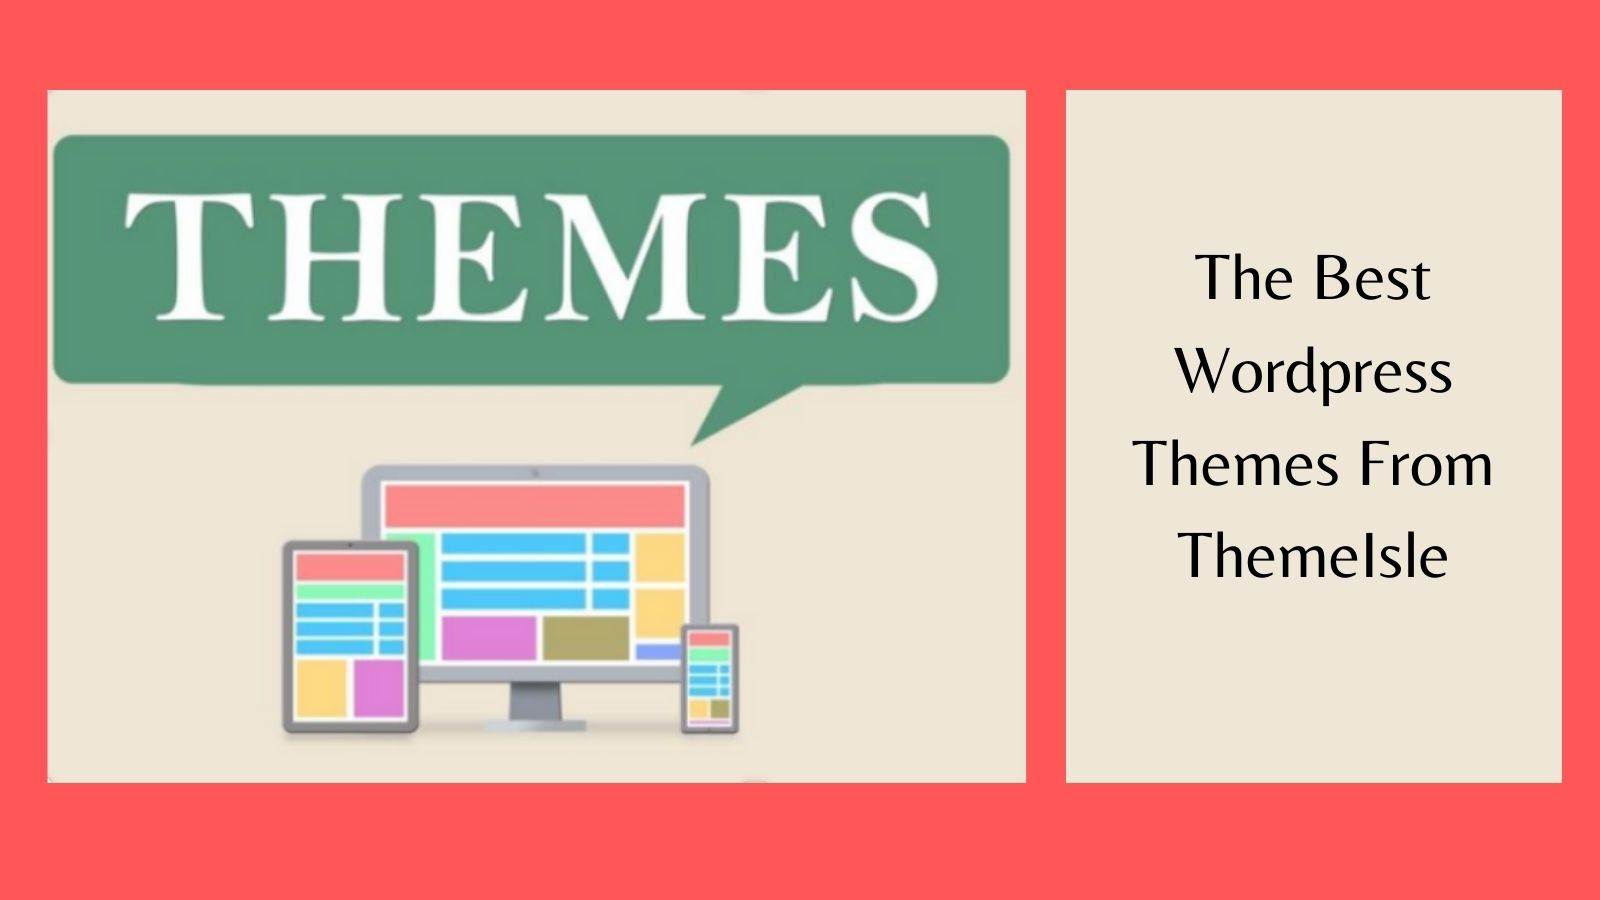 The Best WordPress Themes - Themes Graphic